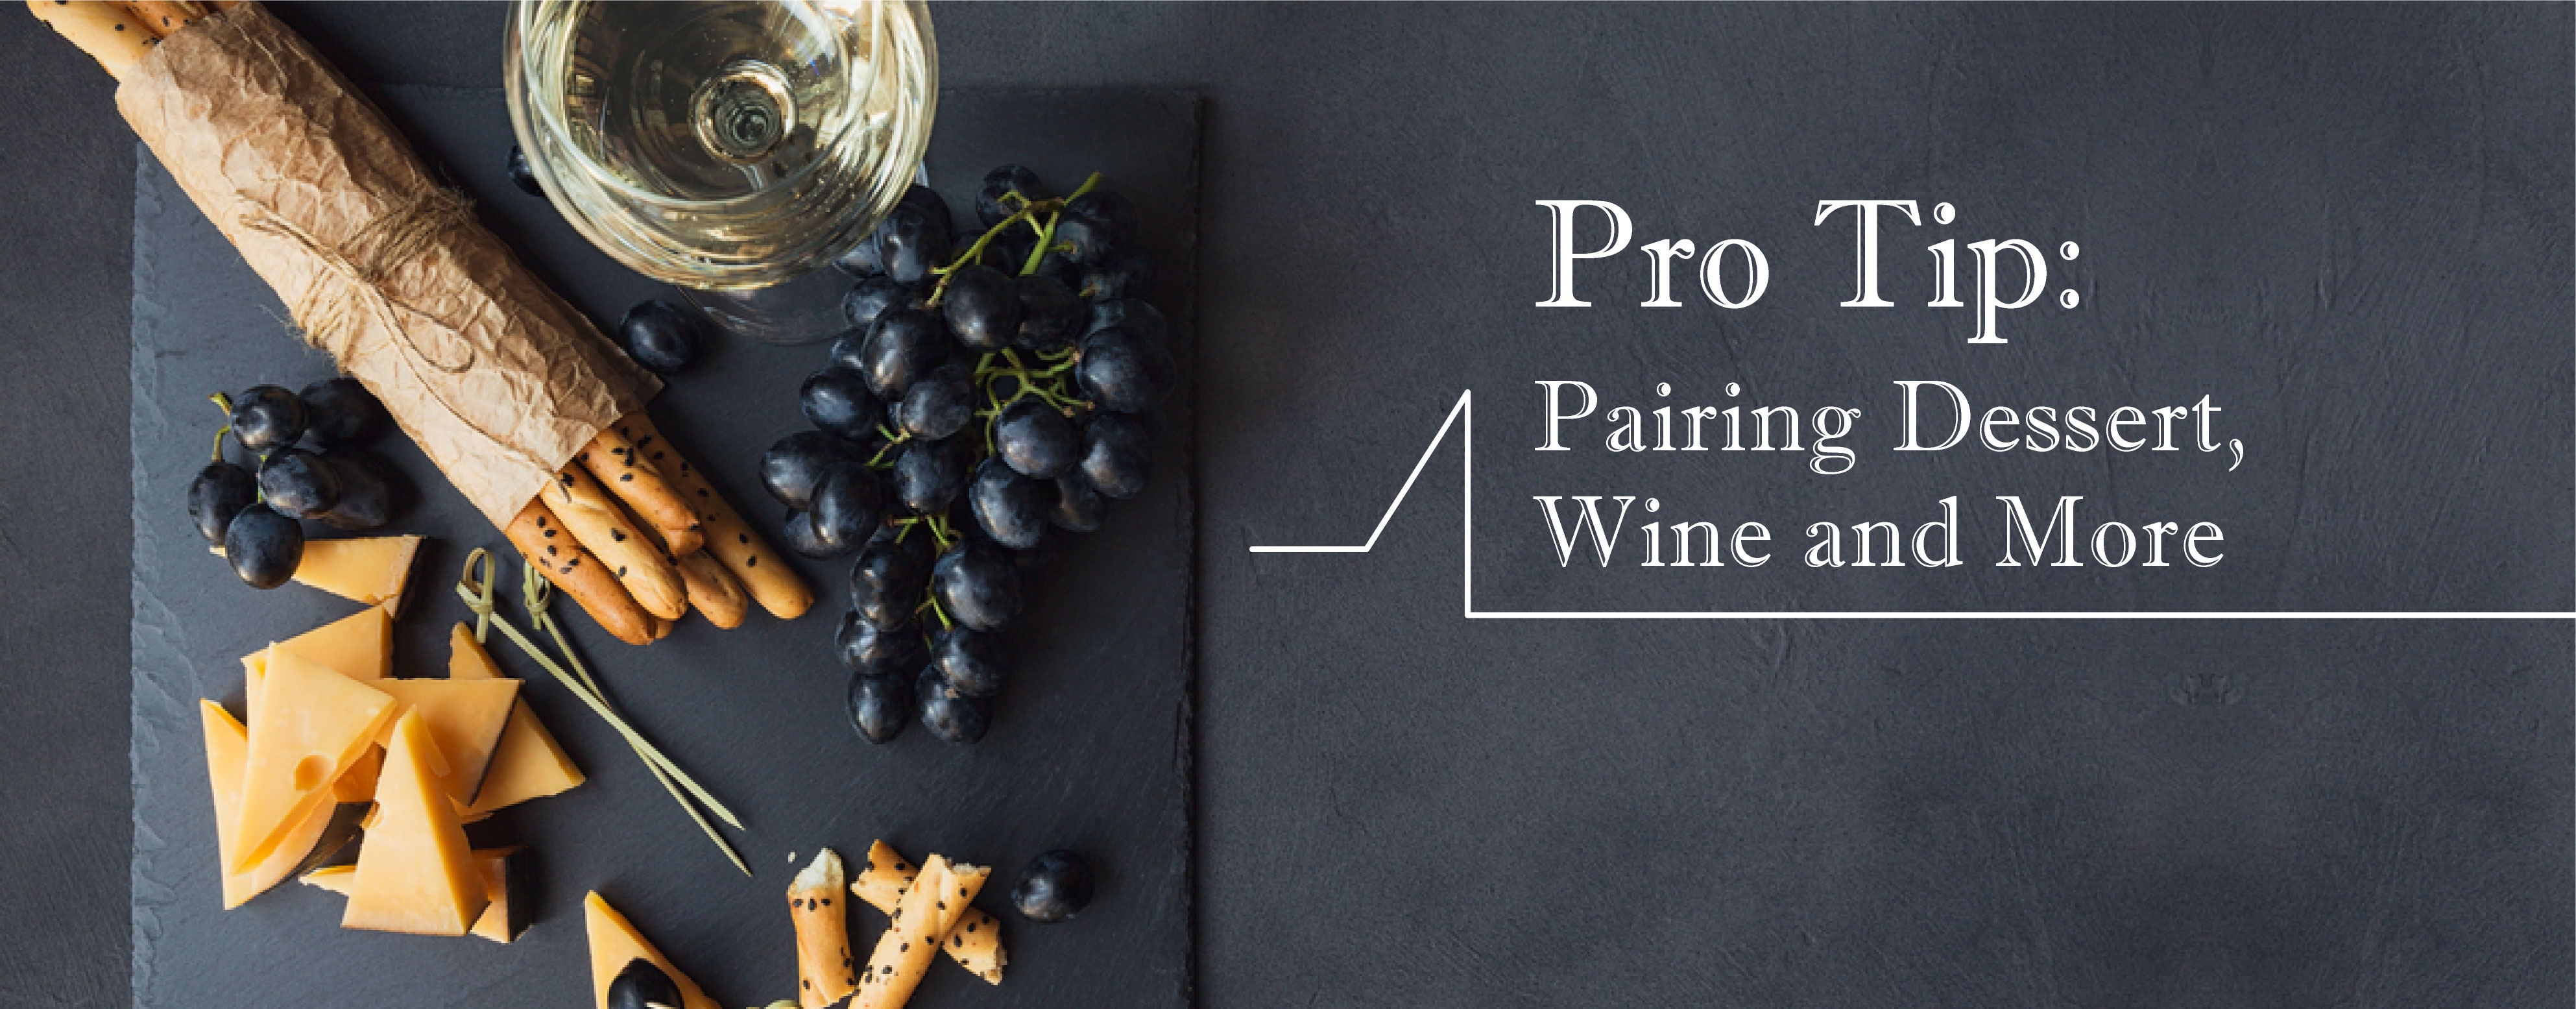 HPro Tip: Pairing Dessert, Wine and More